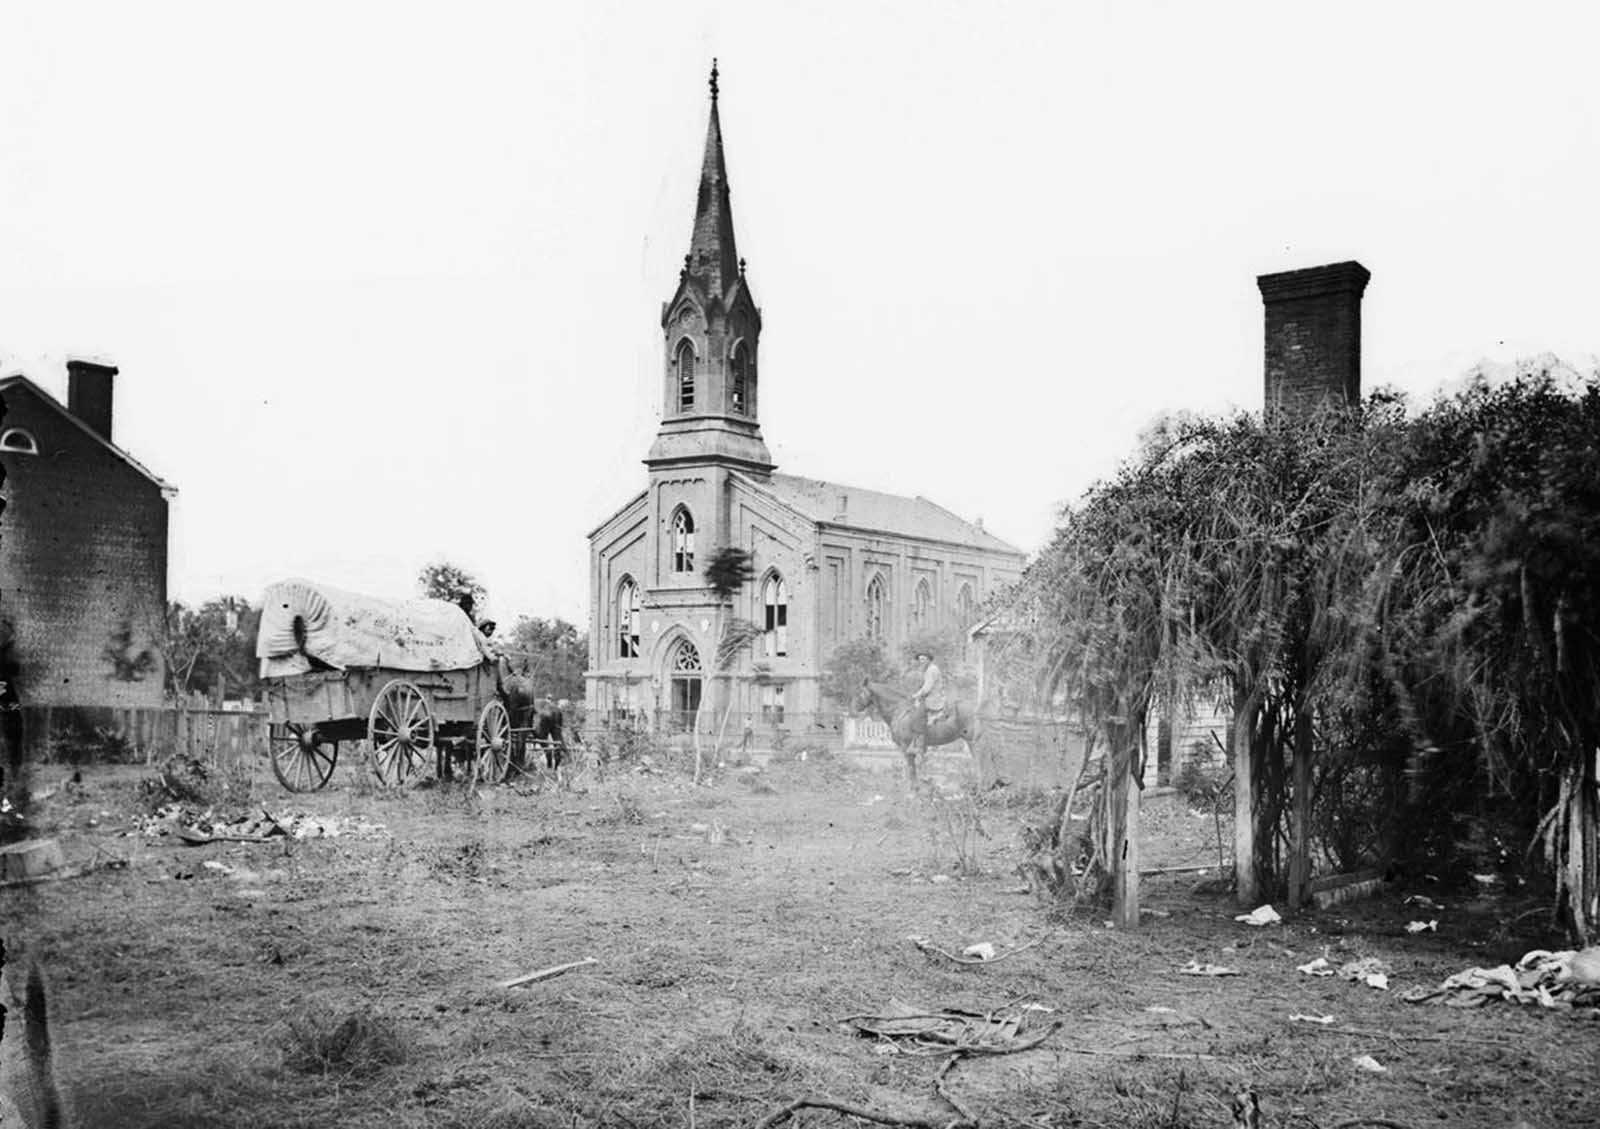 The Baptist Church in Fredericksburg, Virginia, photographed from the backyard of the Sanitary Commission depot on May 20, 1864, after the city had been damaged in two different major battles of the war.